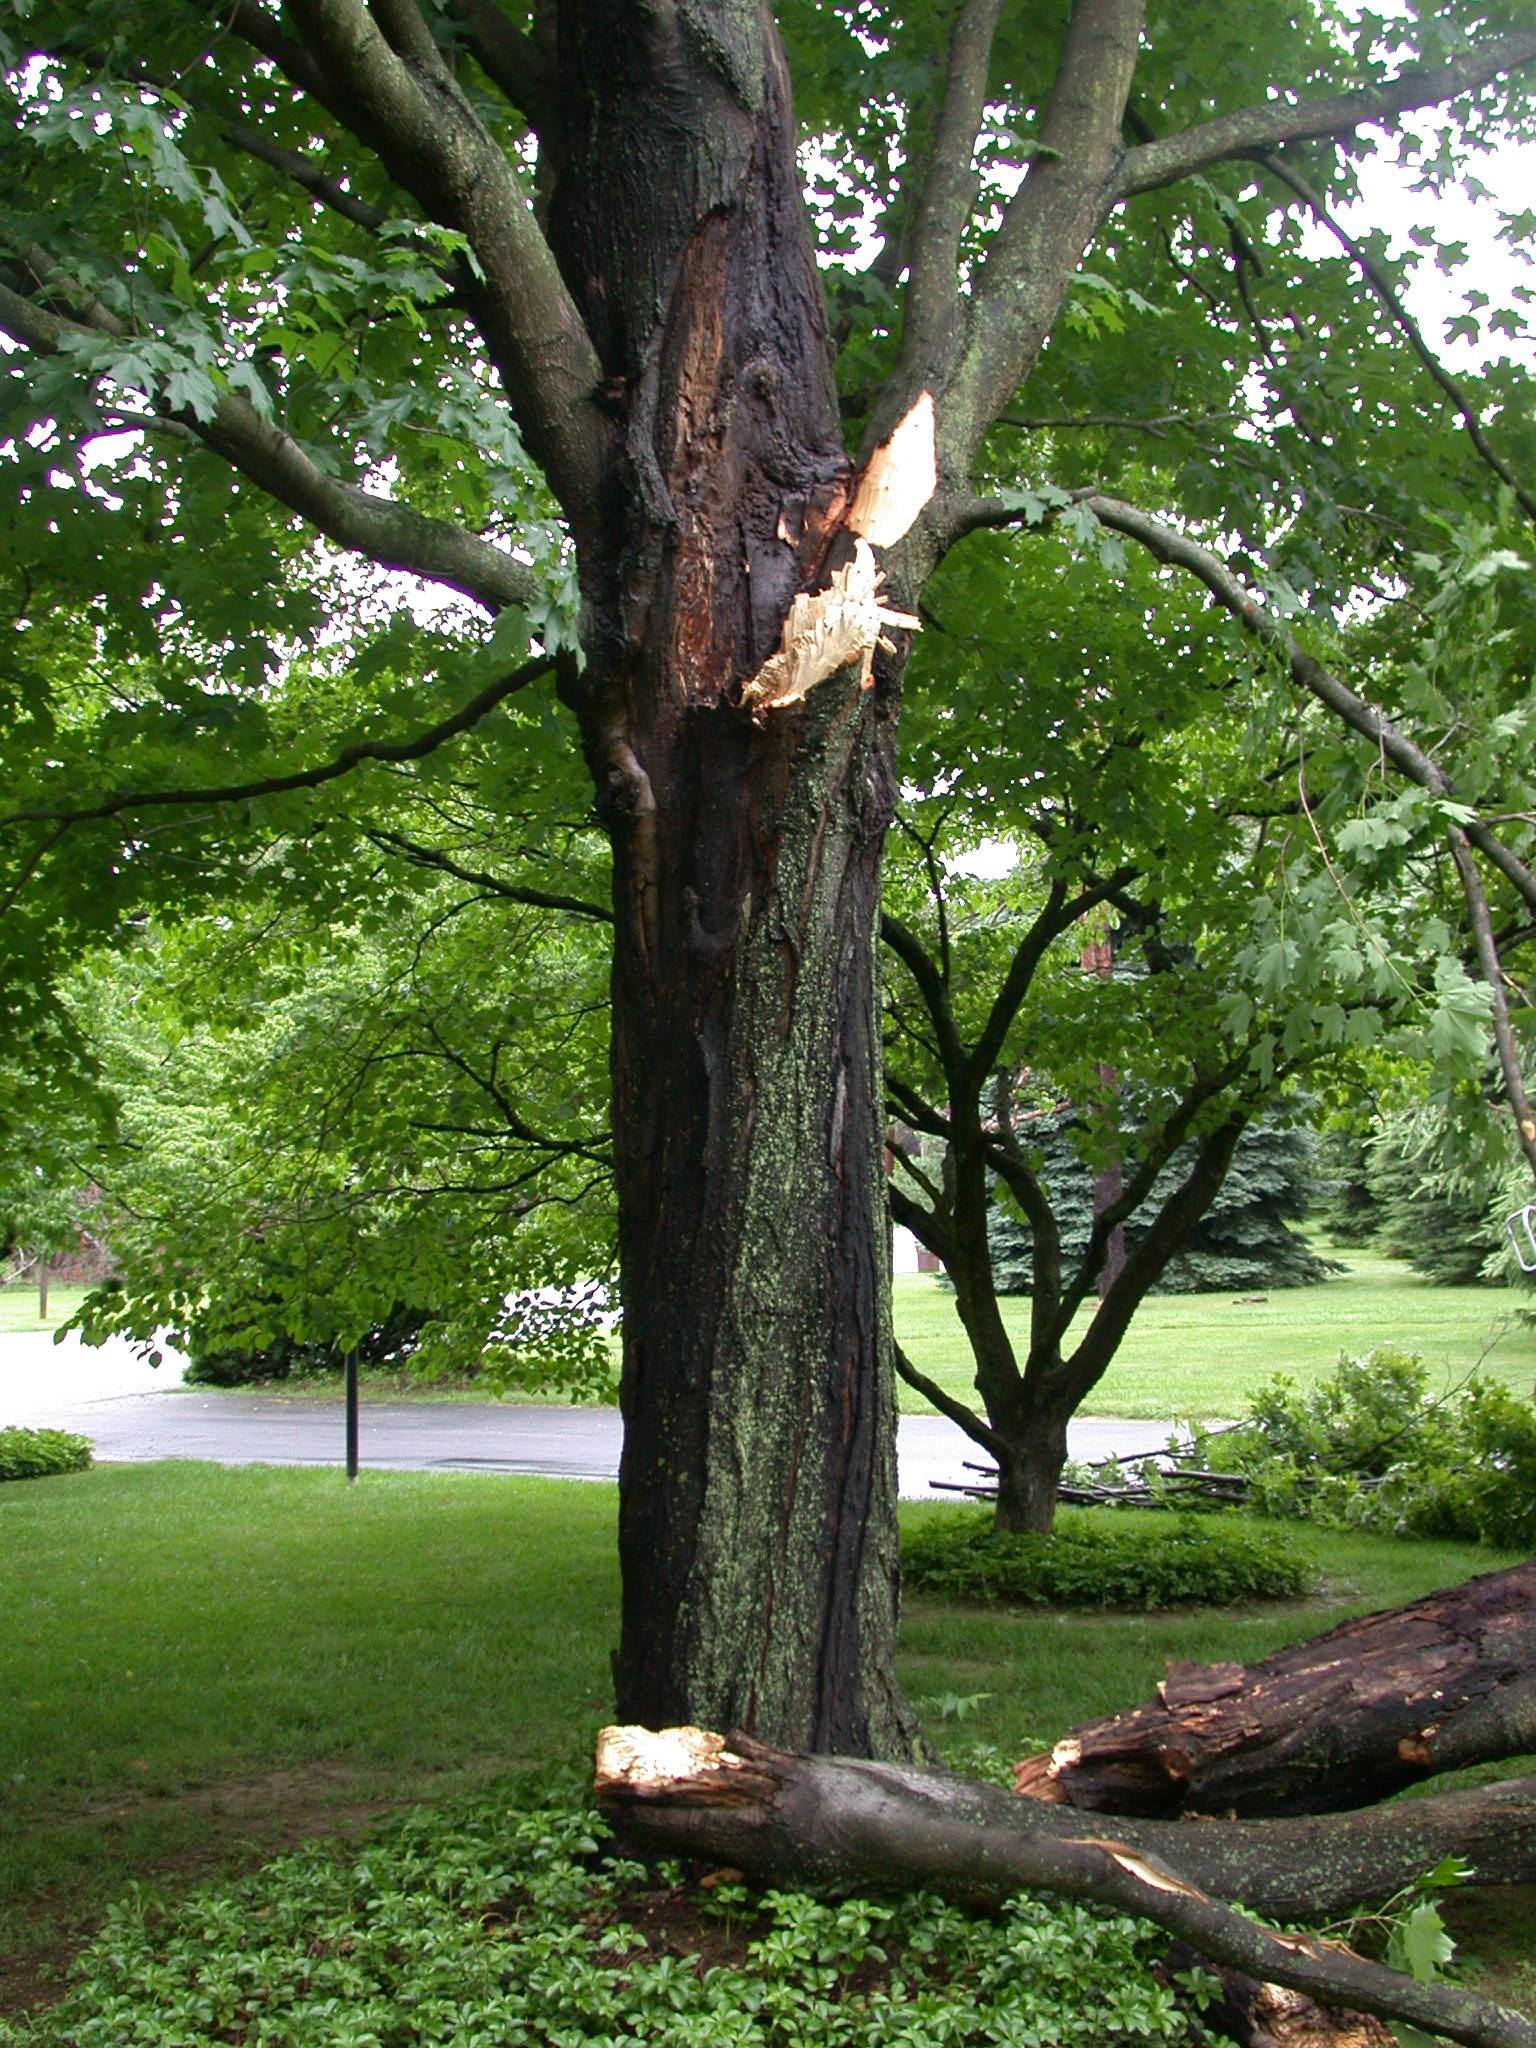 Avoid breaks like these with the tree care tips from Davey Tree arborists.